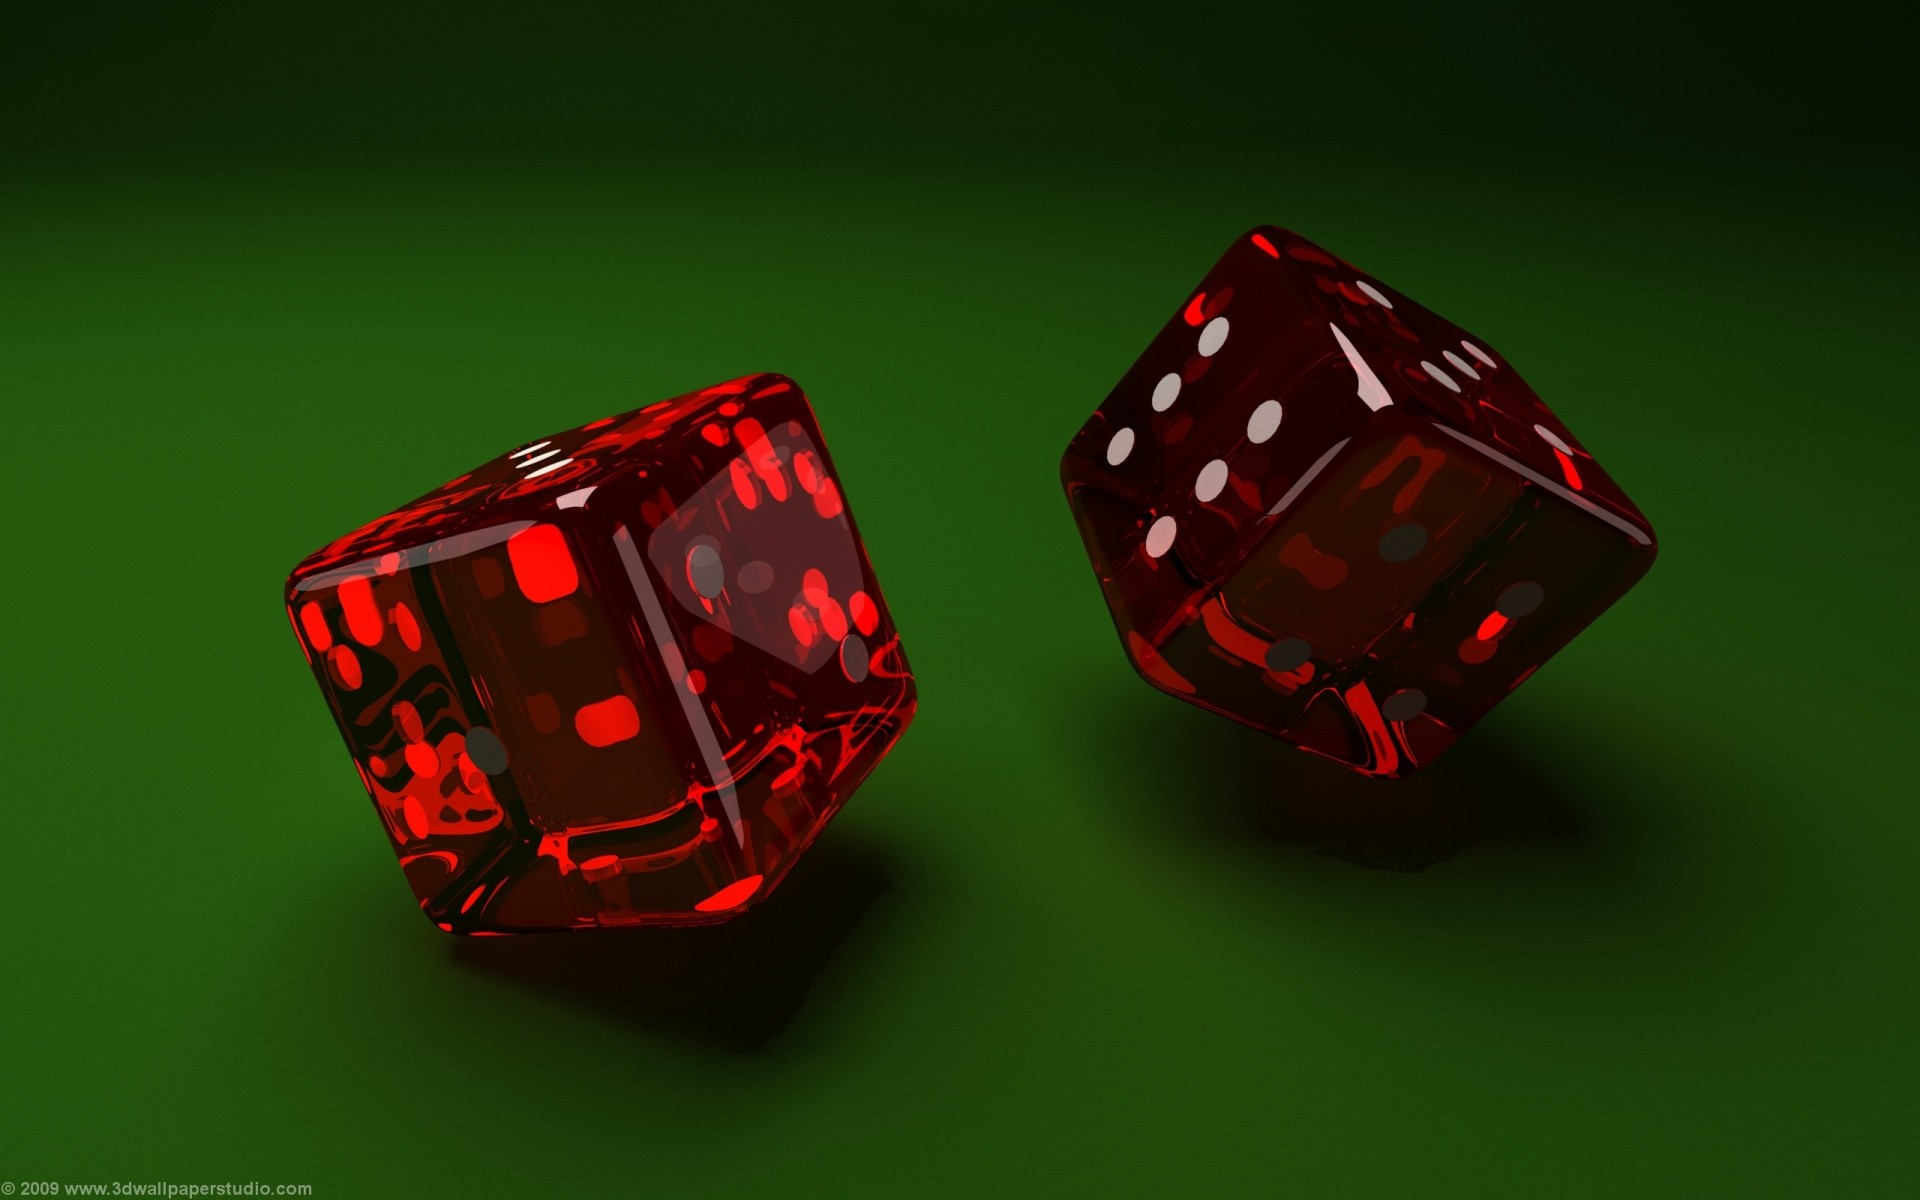 Don't Fall For This Online Casino Rip-off.